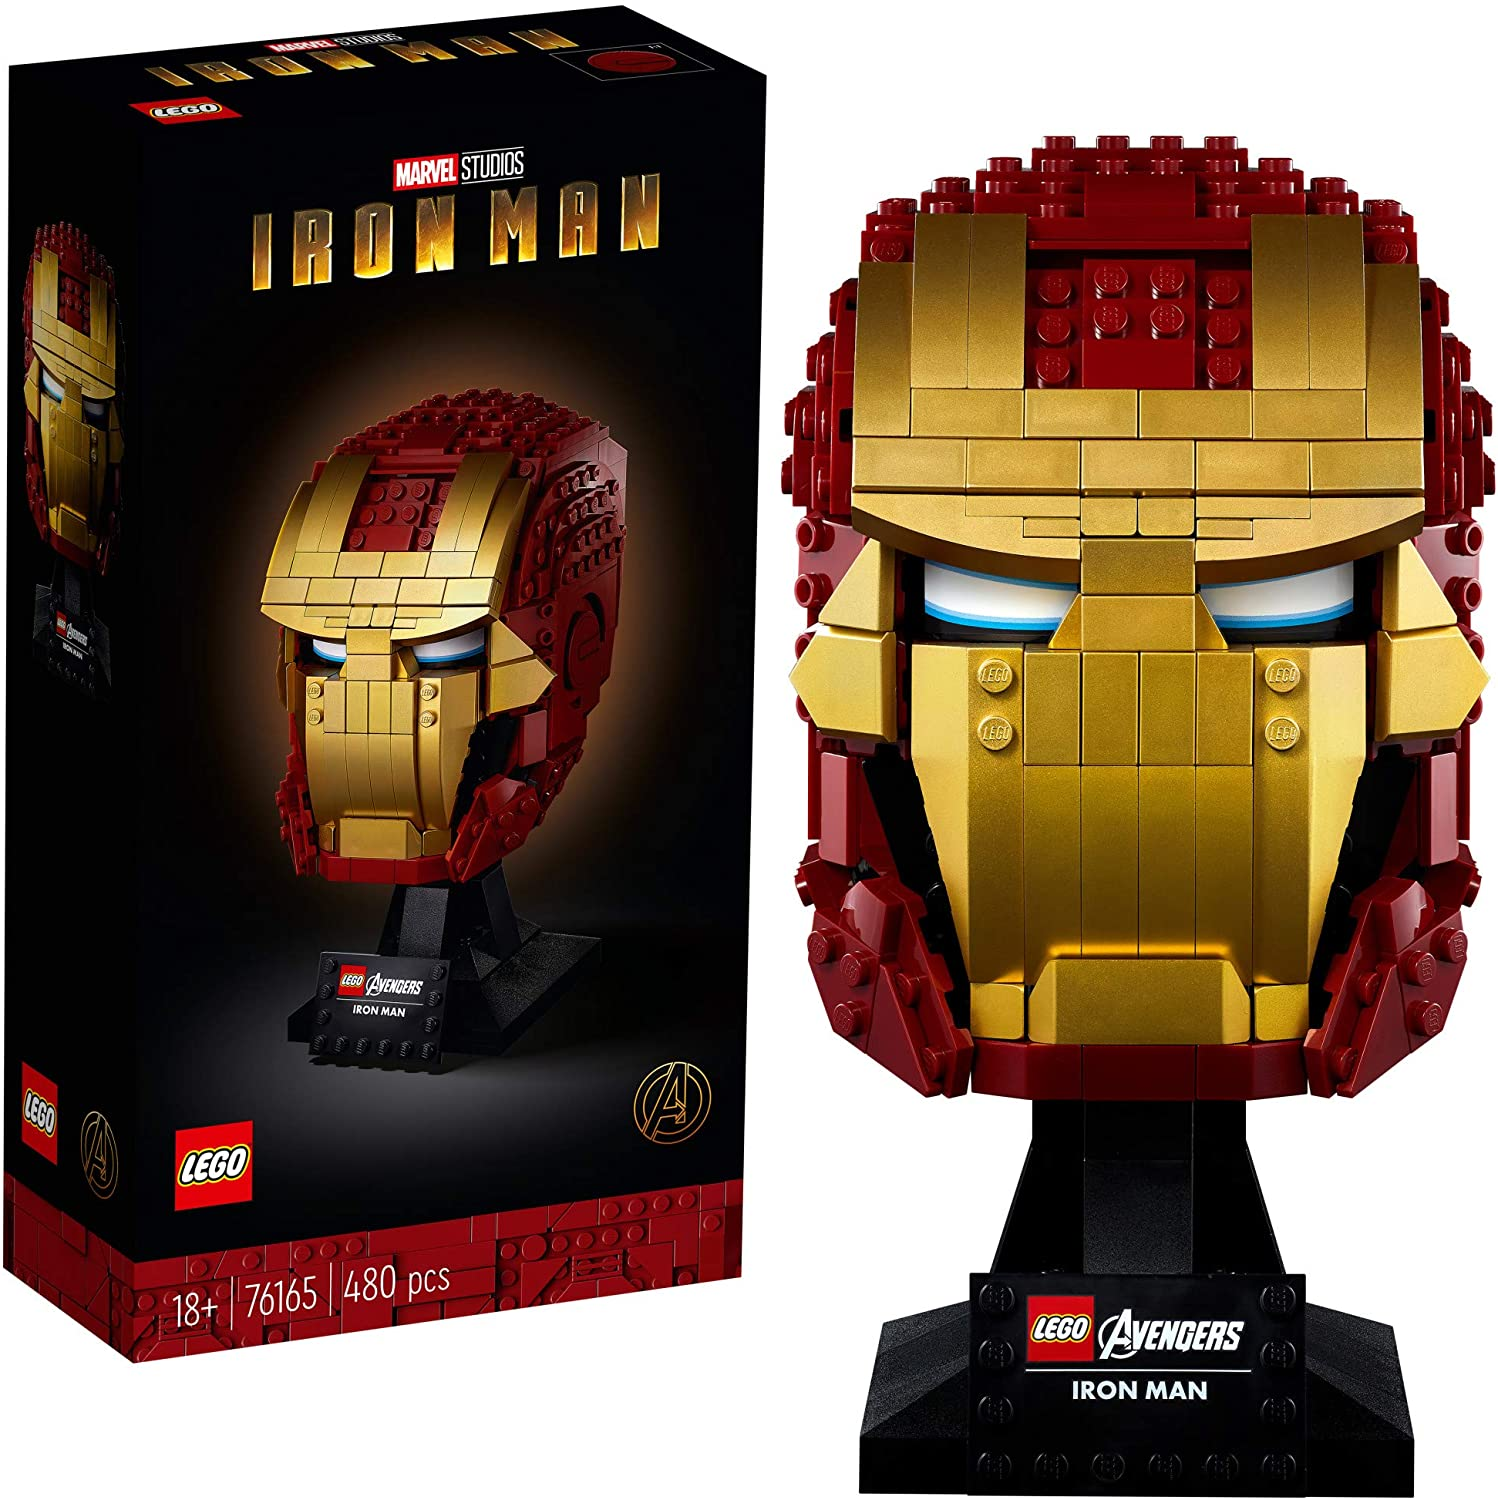 LEGO Marvel Avengers Iron Man Helmet 76165; Brick Iron Man-Mask for-Adults to Build and Display, Creative Challenge for Marvel Fans, New 2020 (480 Pieces)